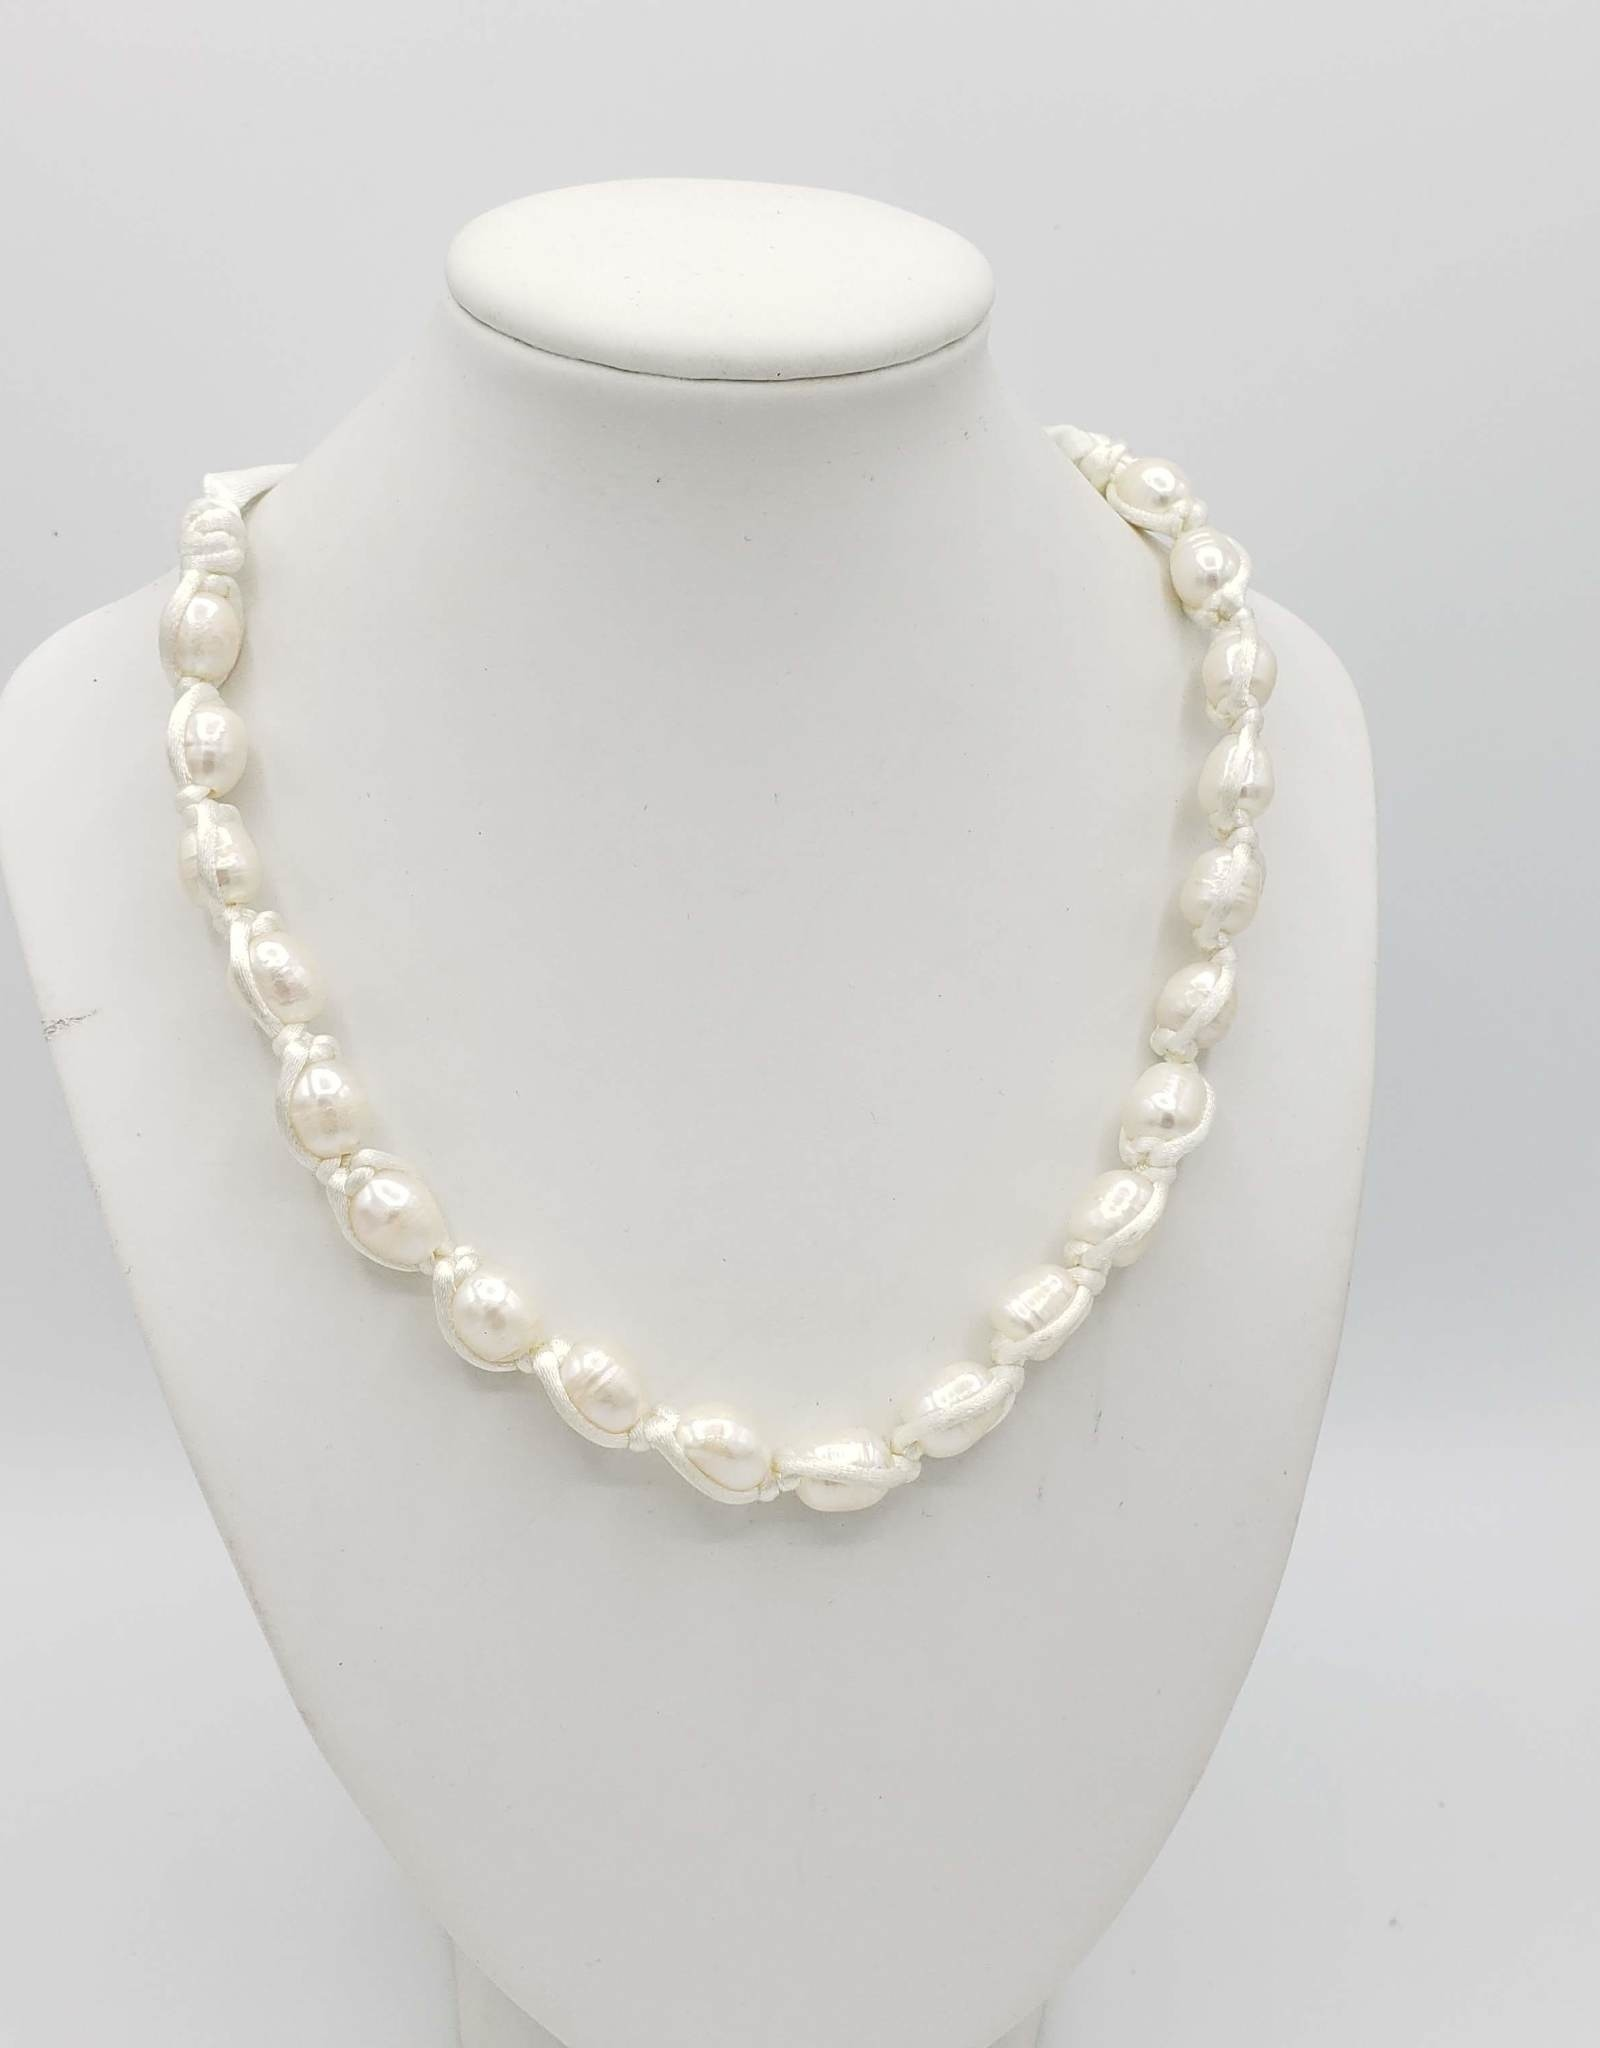 White Freshwater Pearl Necklace w/Ribbon